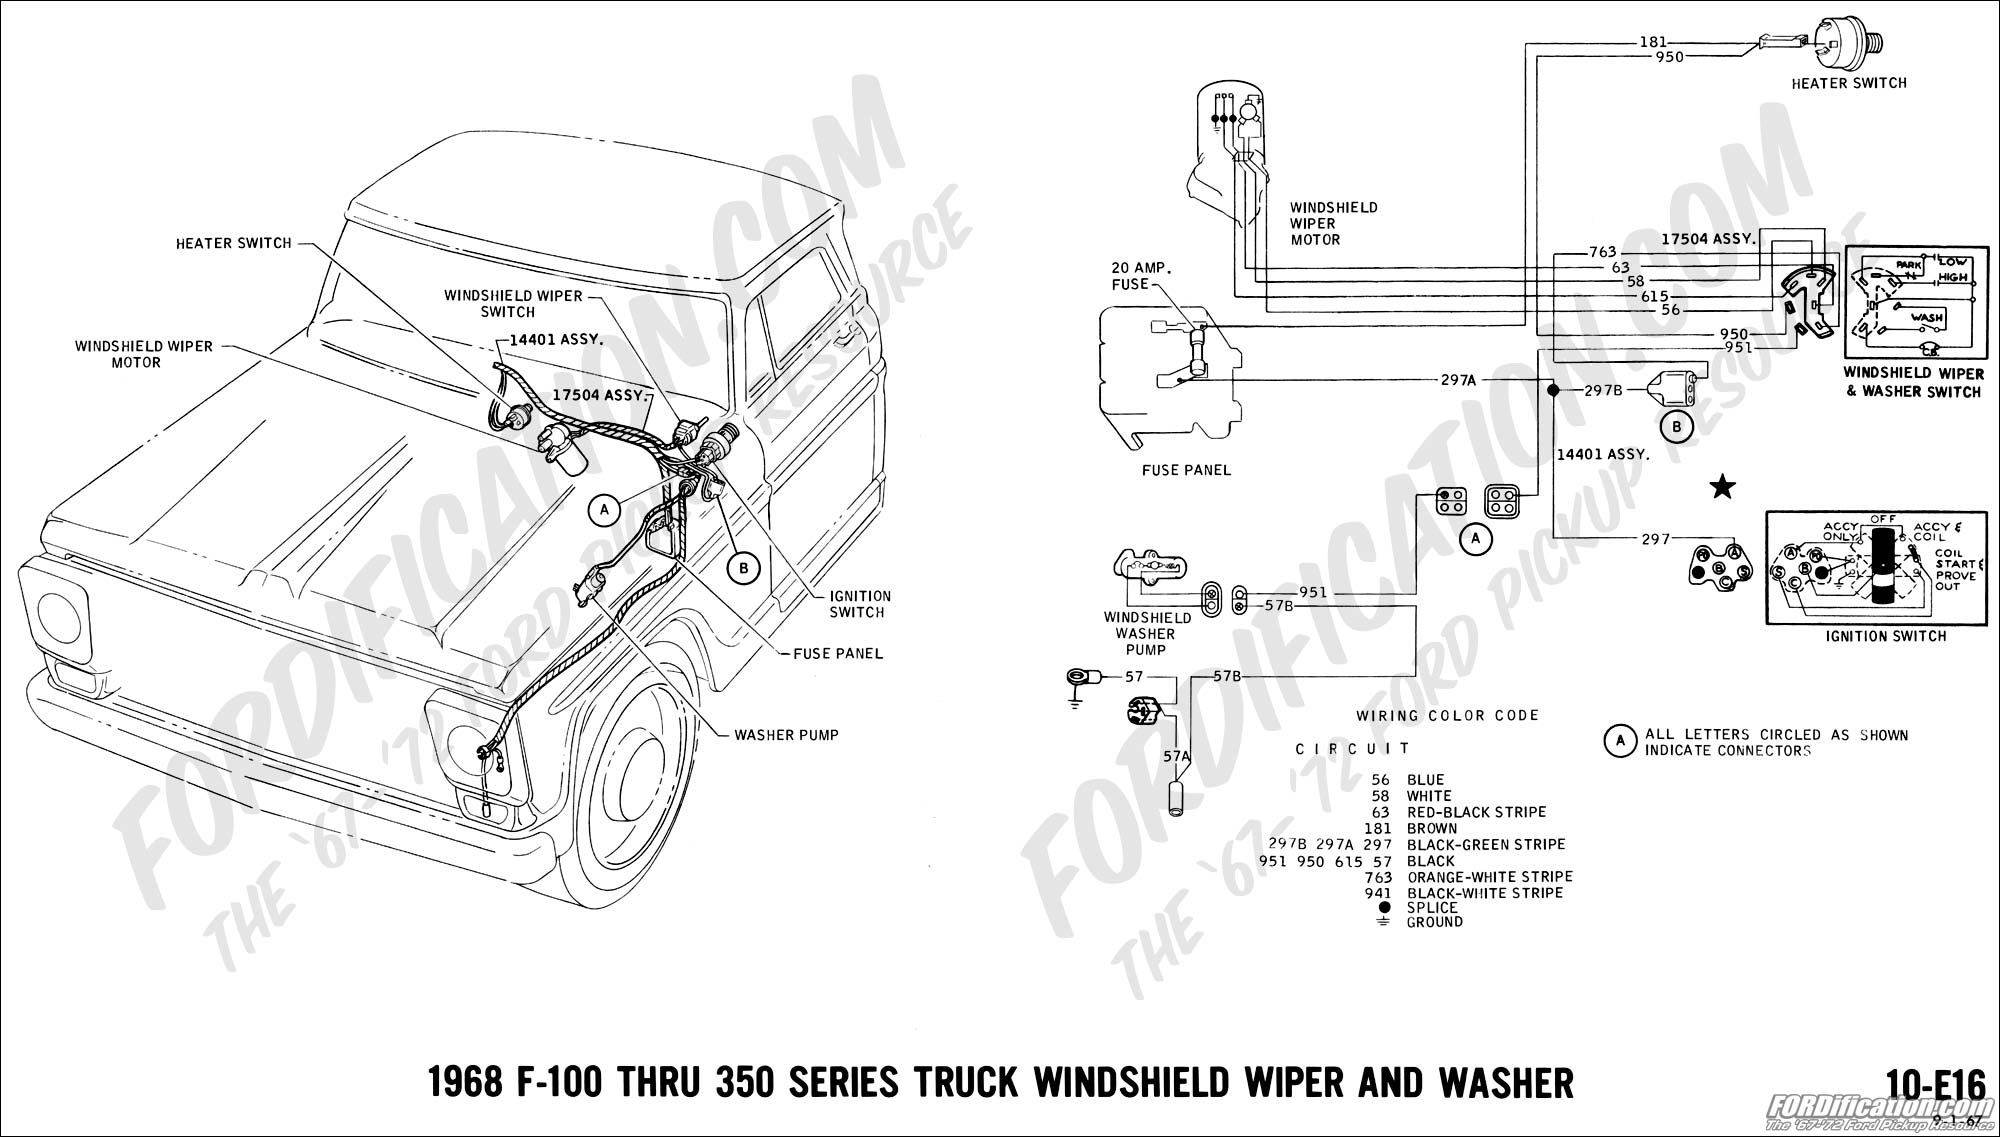 68 18 1985 ford ranger wiring diagram ford ranger fuel system diagram 1988 ford ranger alternator wiring diagram at alyssarenee.co